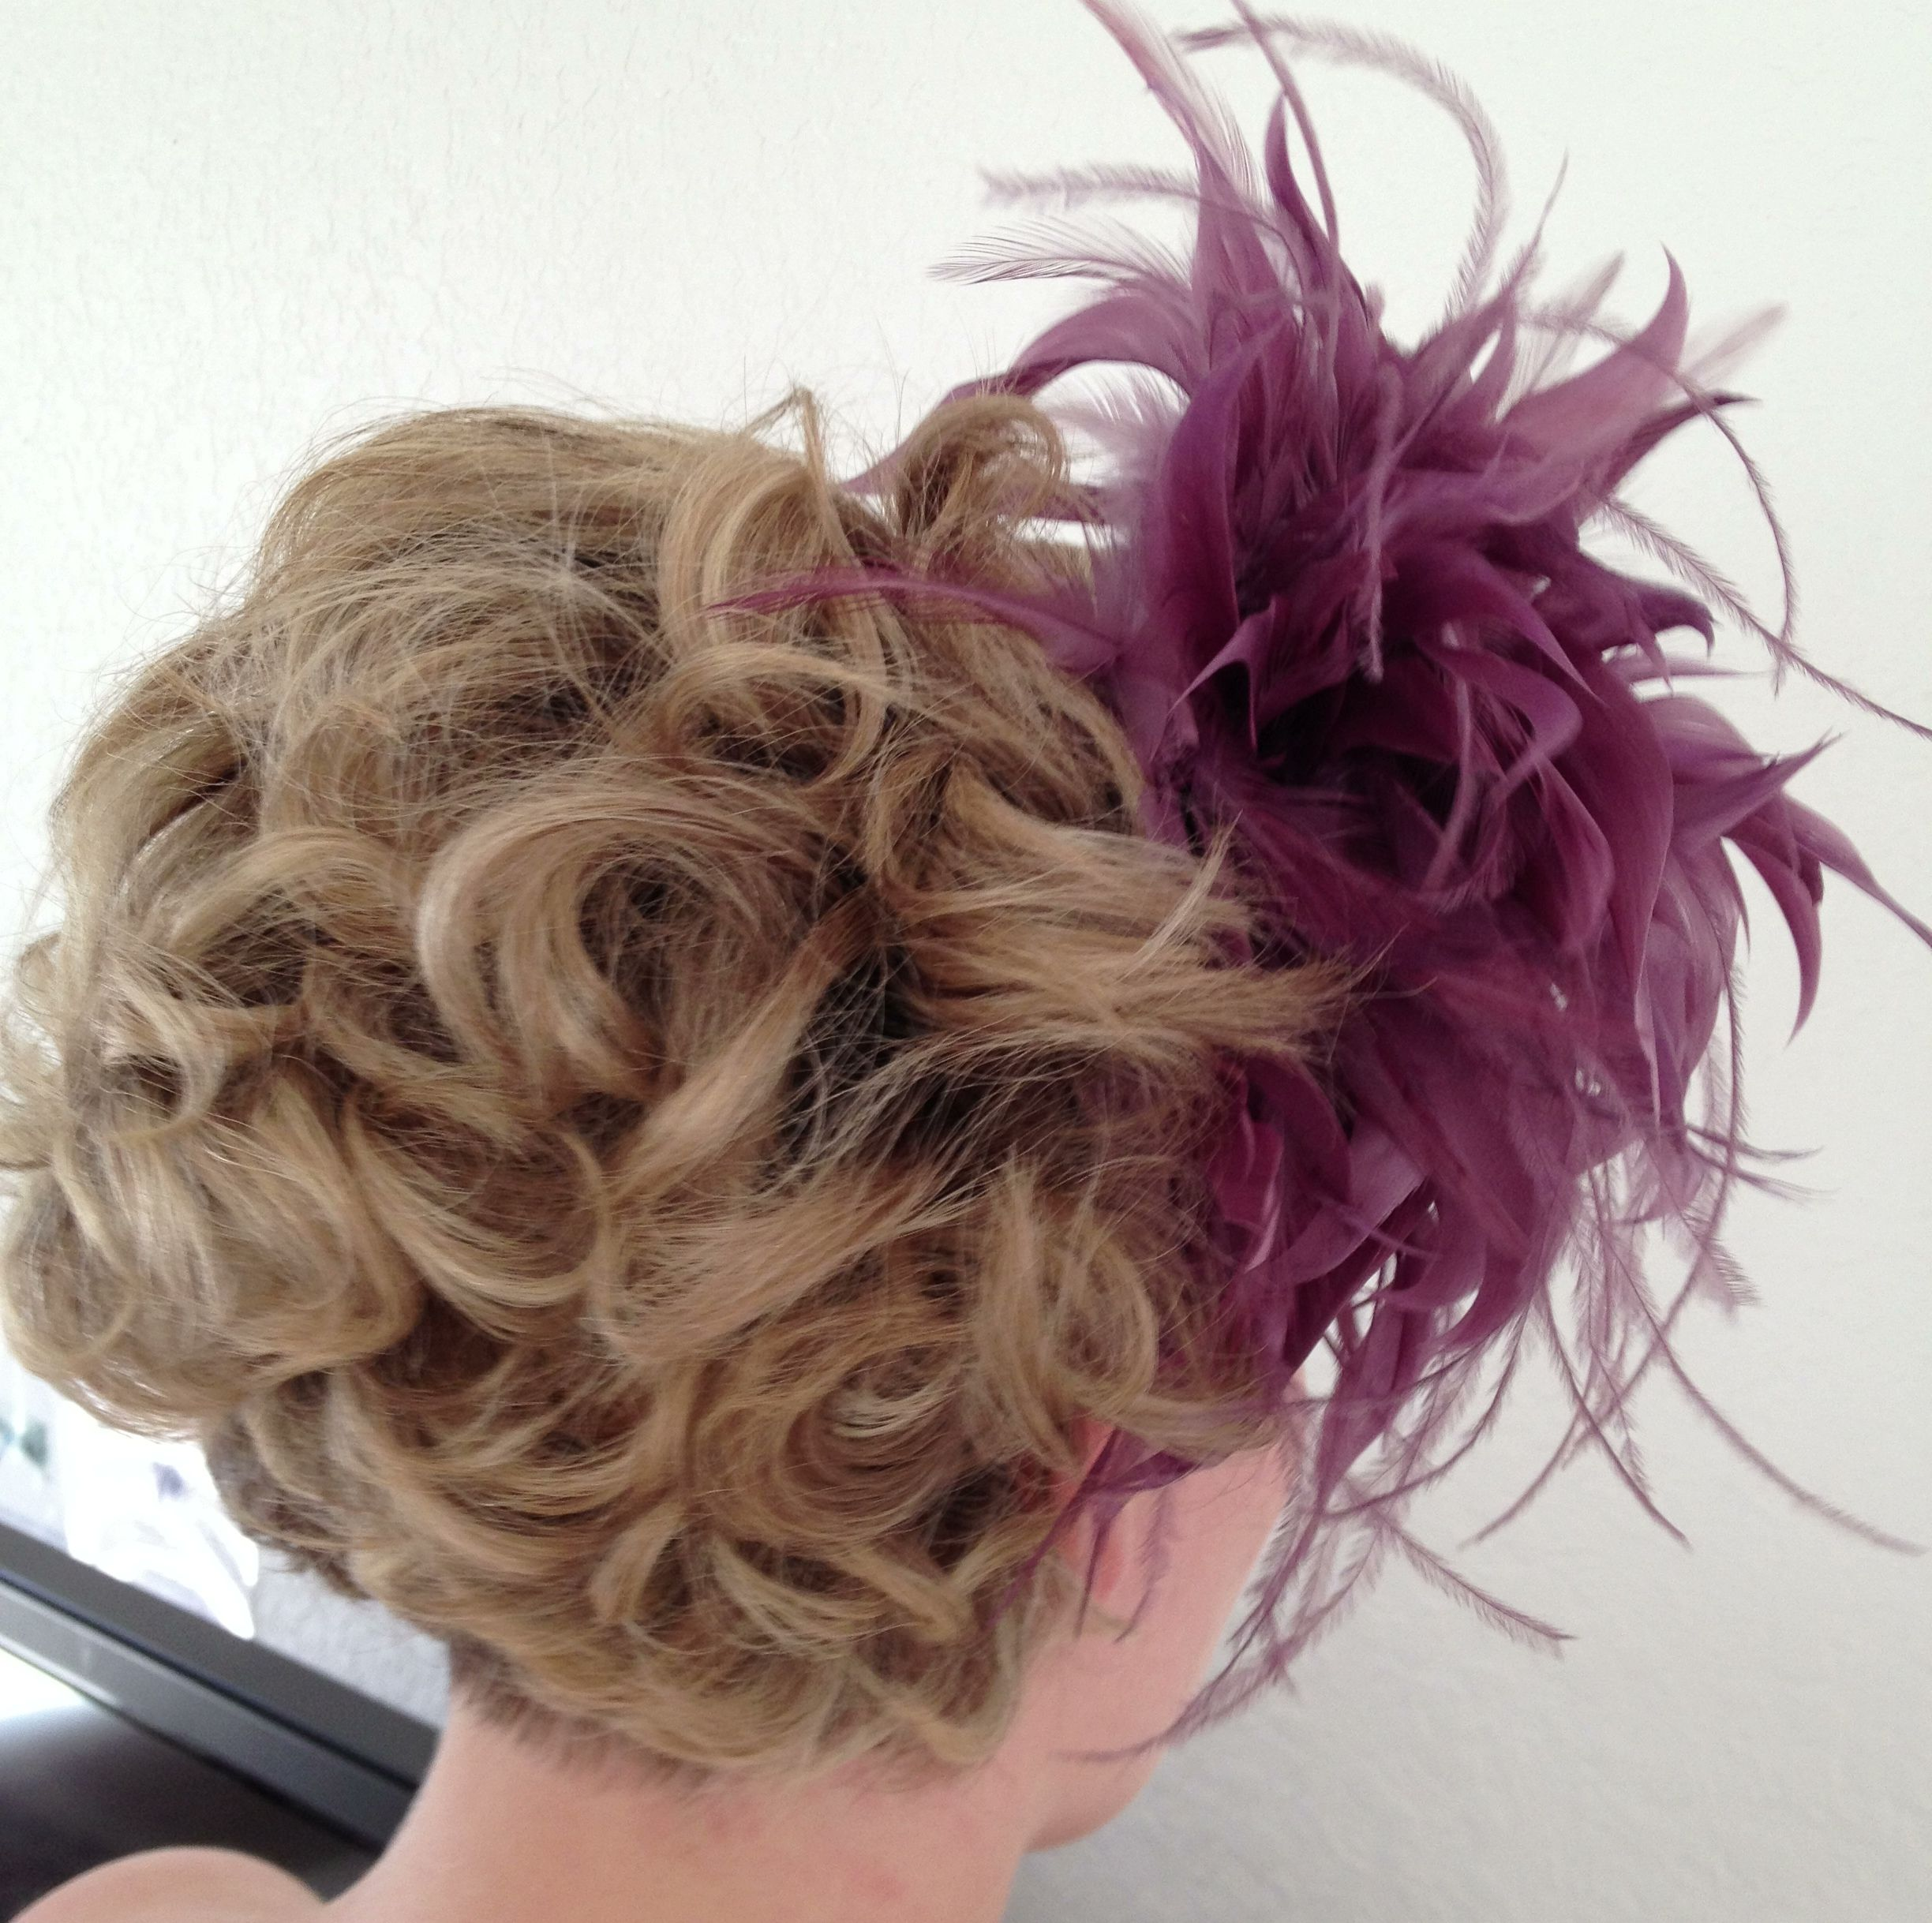 This bridal hairstyle started as a straight, short bob ...